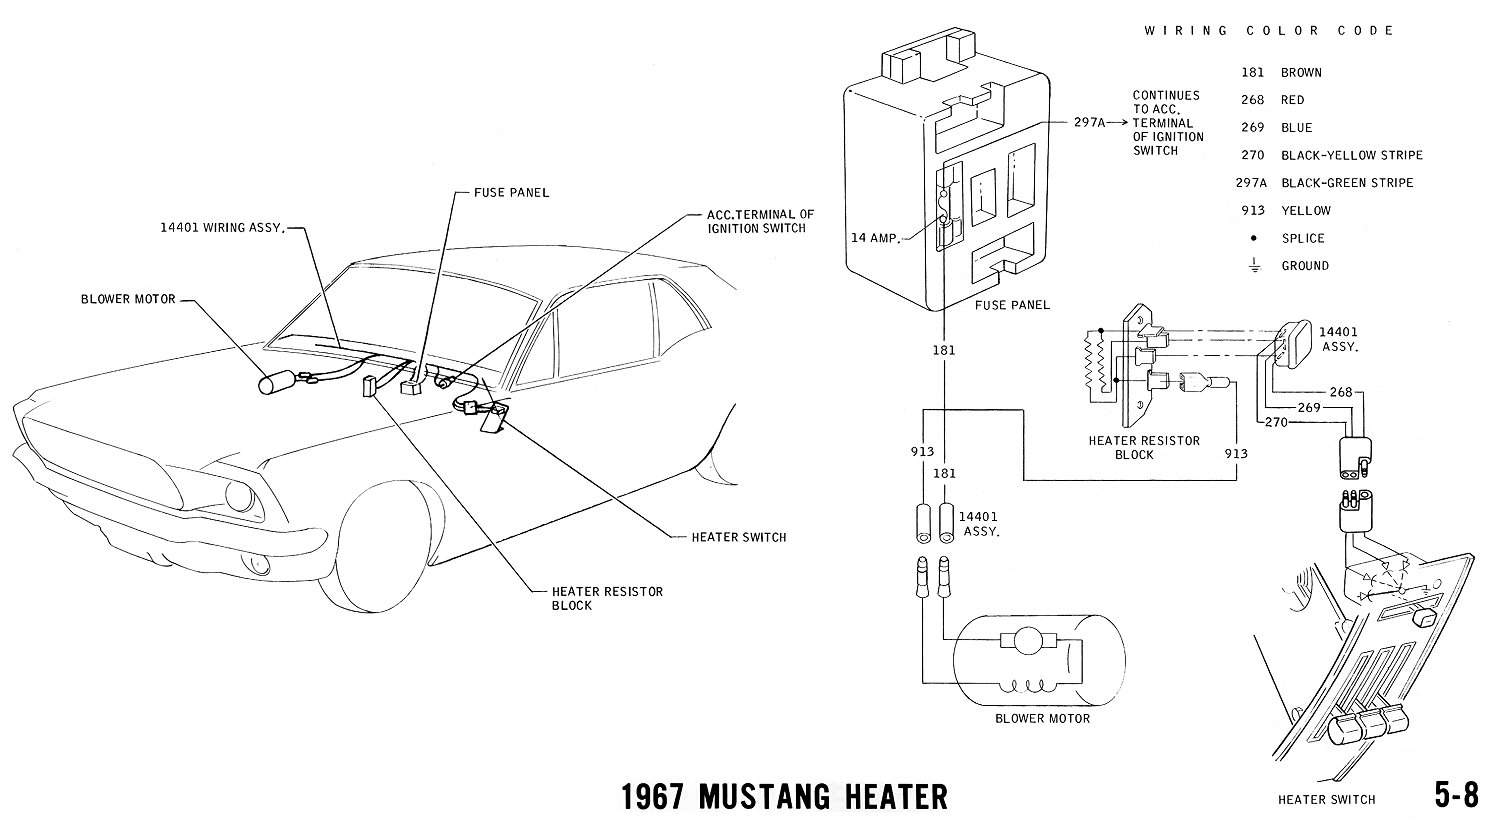 1970 Mustang Fuse Panel Diagram Free Wiring For You 2002 Ford Gt Box Wires 1967 Rh 19 2 Carrera Rennwelt De 2000 Layout